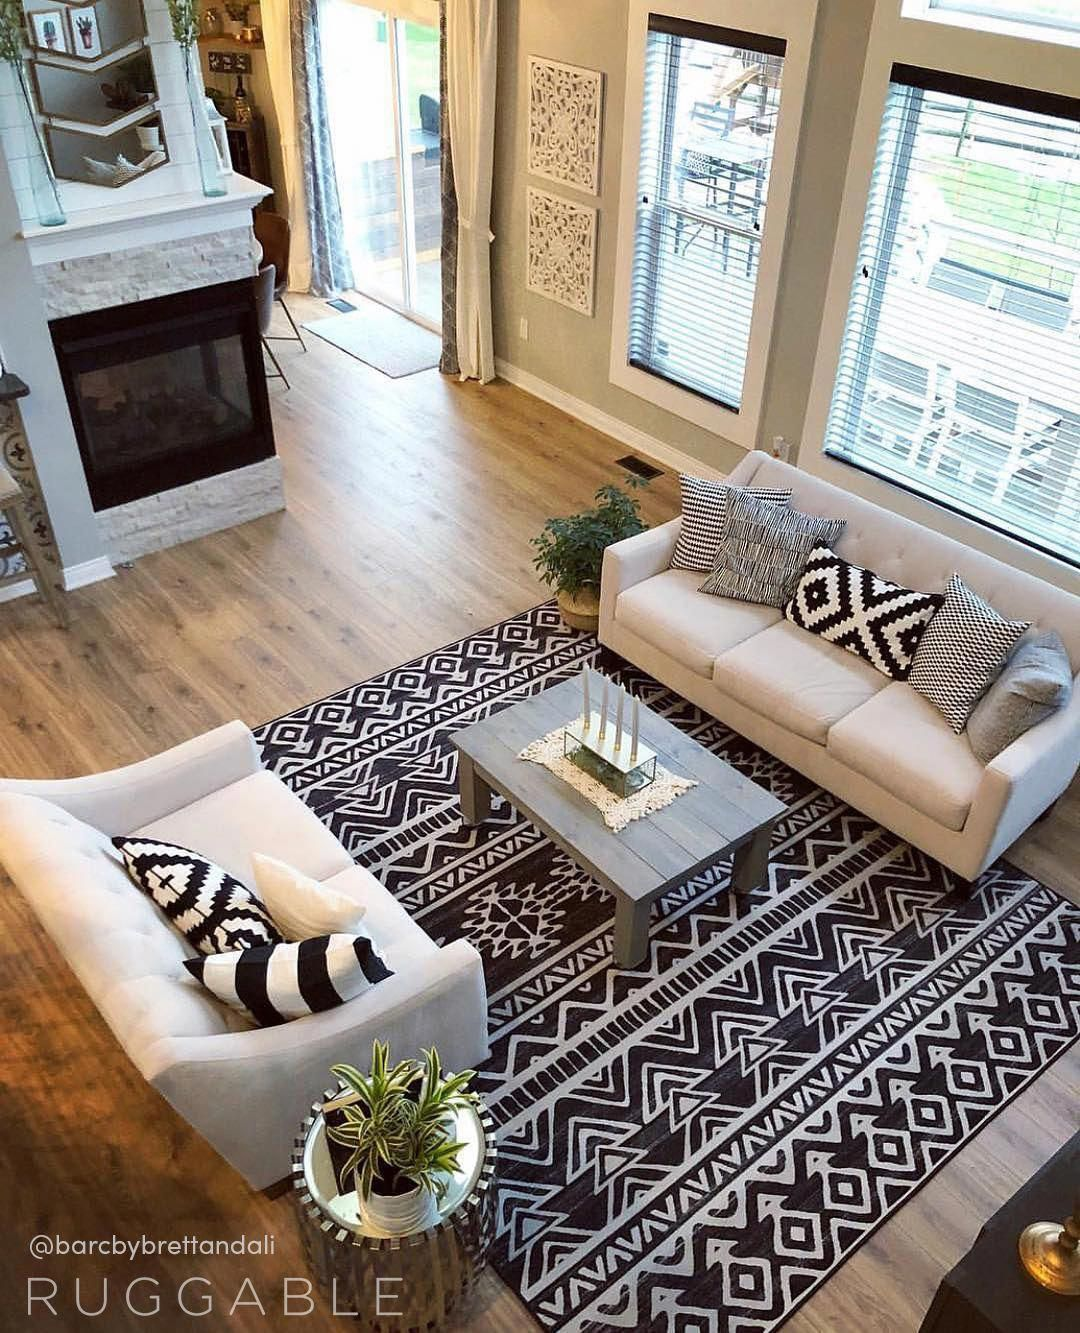 The Linear Aztec Black Washable Rug Styled By Barcbybrettandali This Tribal Print Rug Is Perfec Rugs In Living Room Aztec Rug Living Room Living Room Designs Living room uk meaning